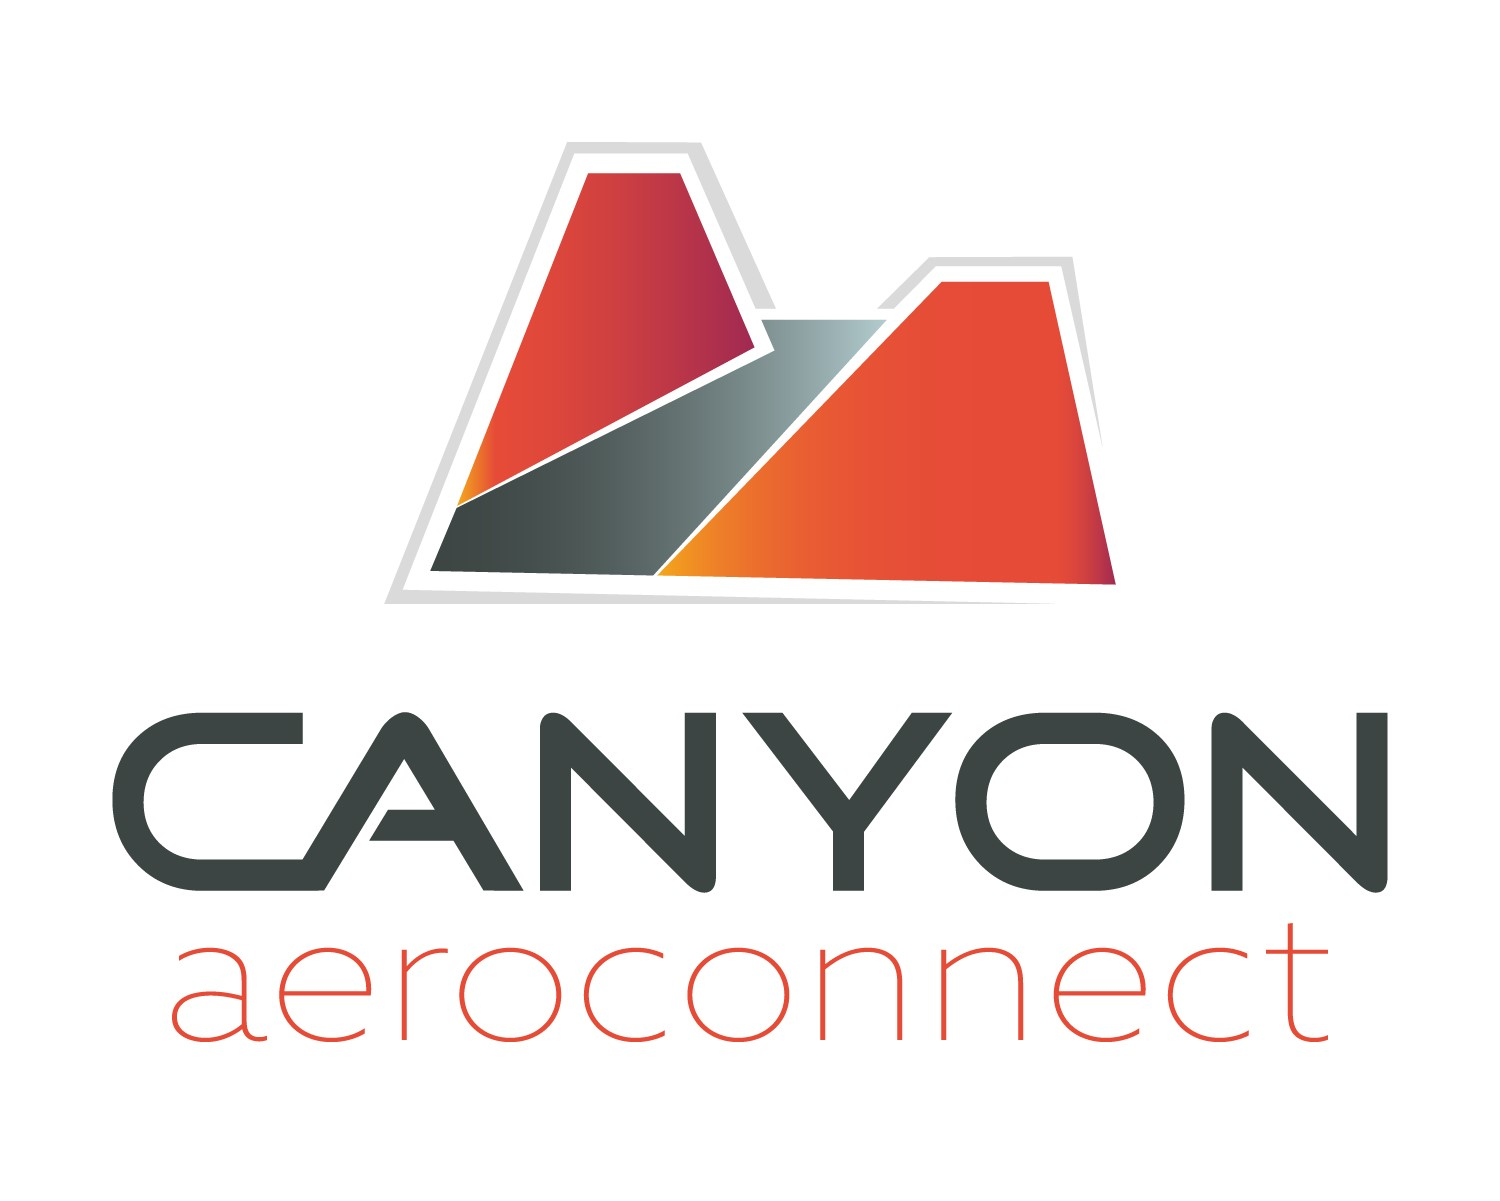 Canyon AeroConnect